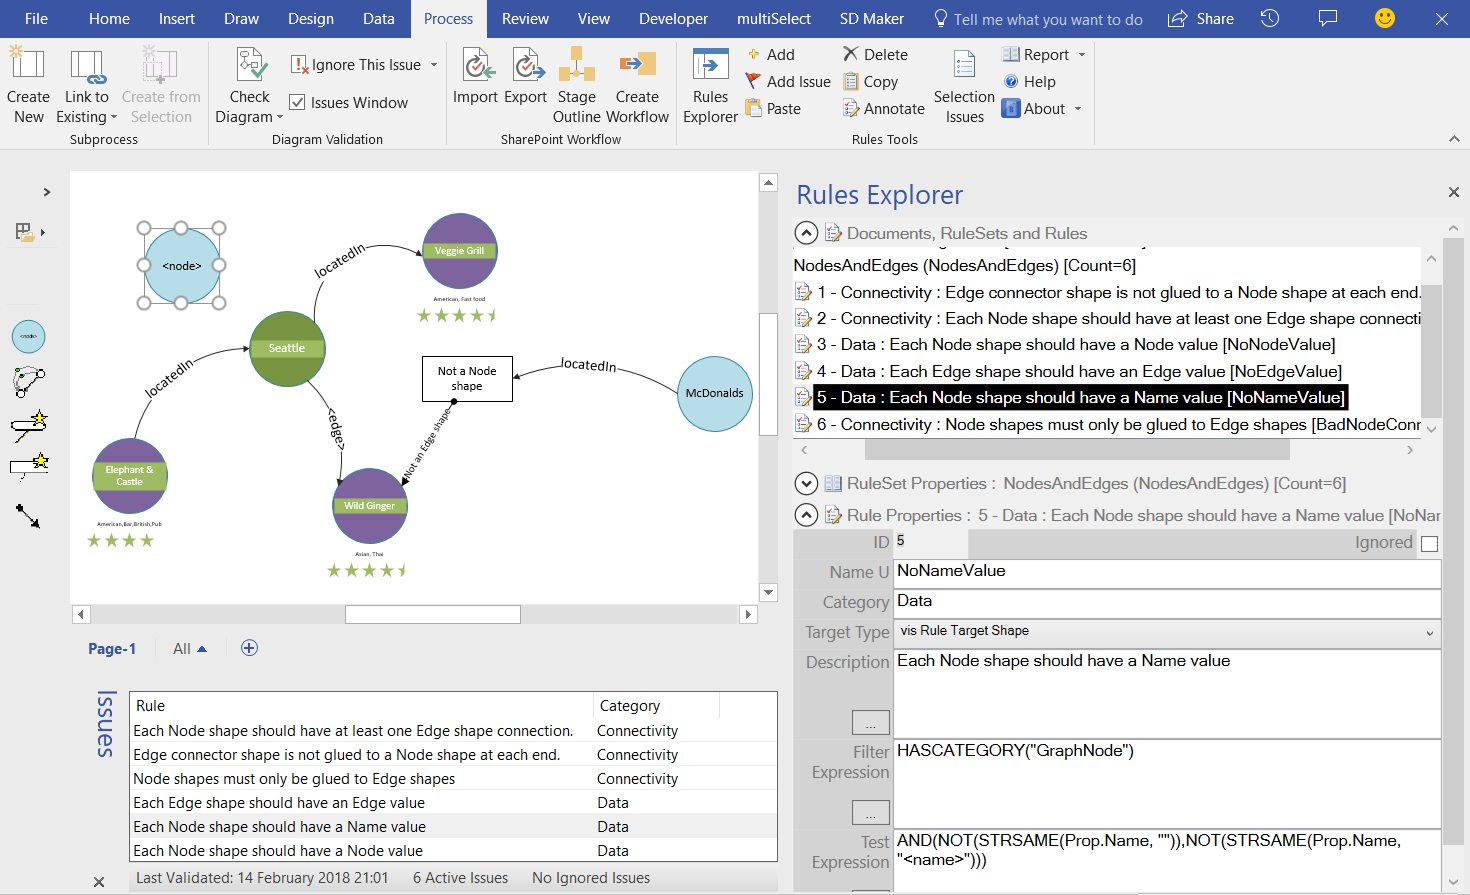 Creating Visio Validation Rules For Graphdatabase